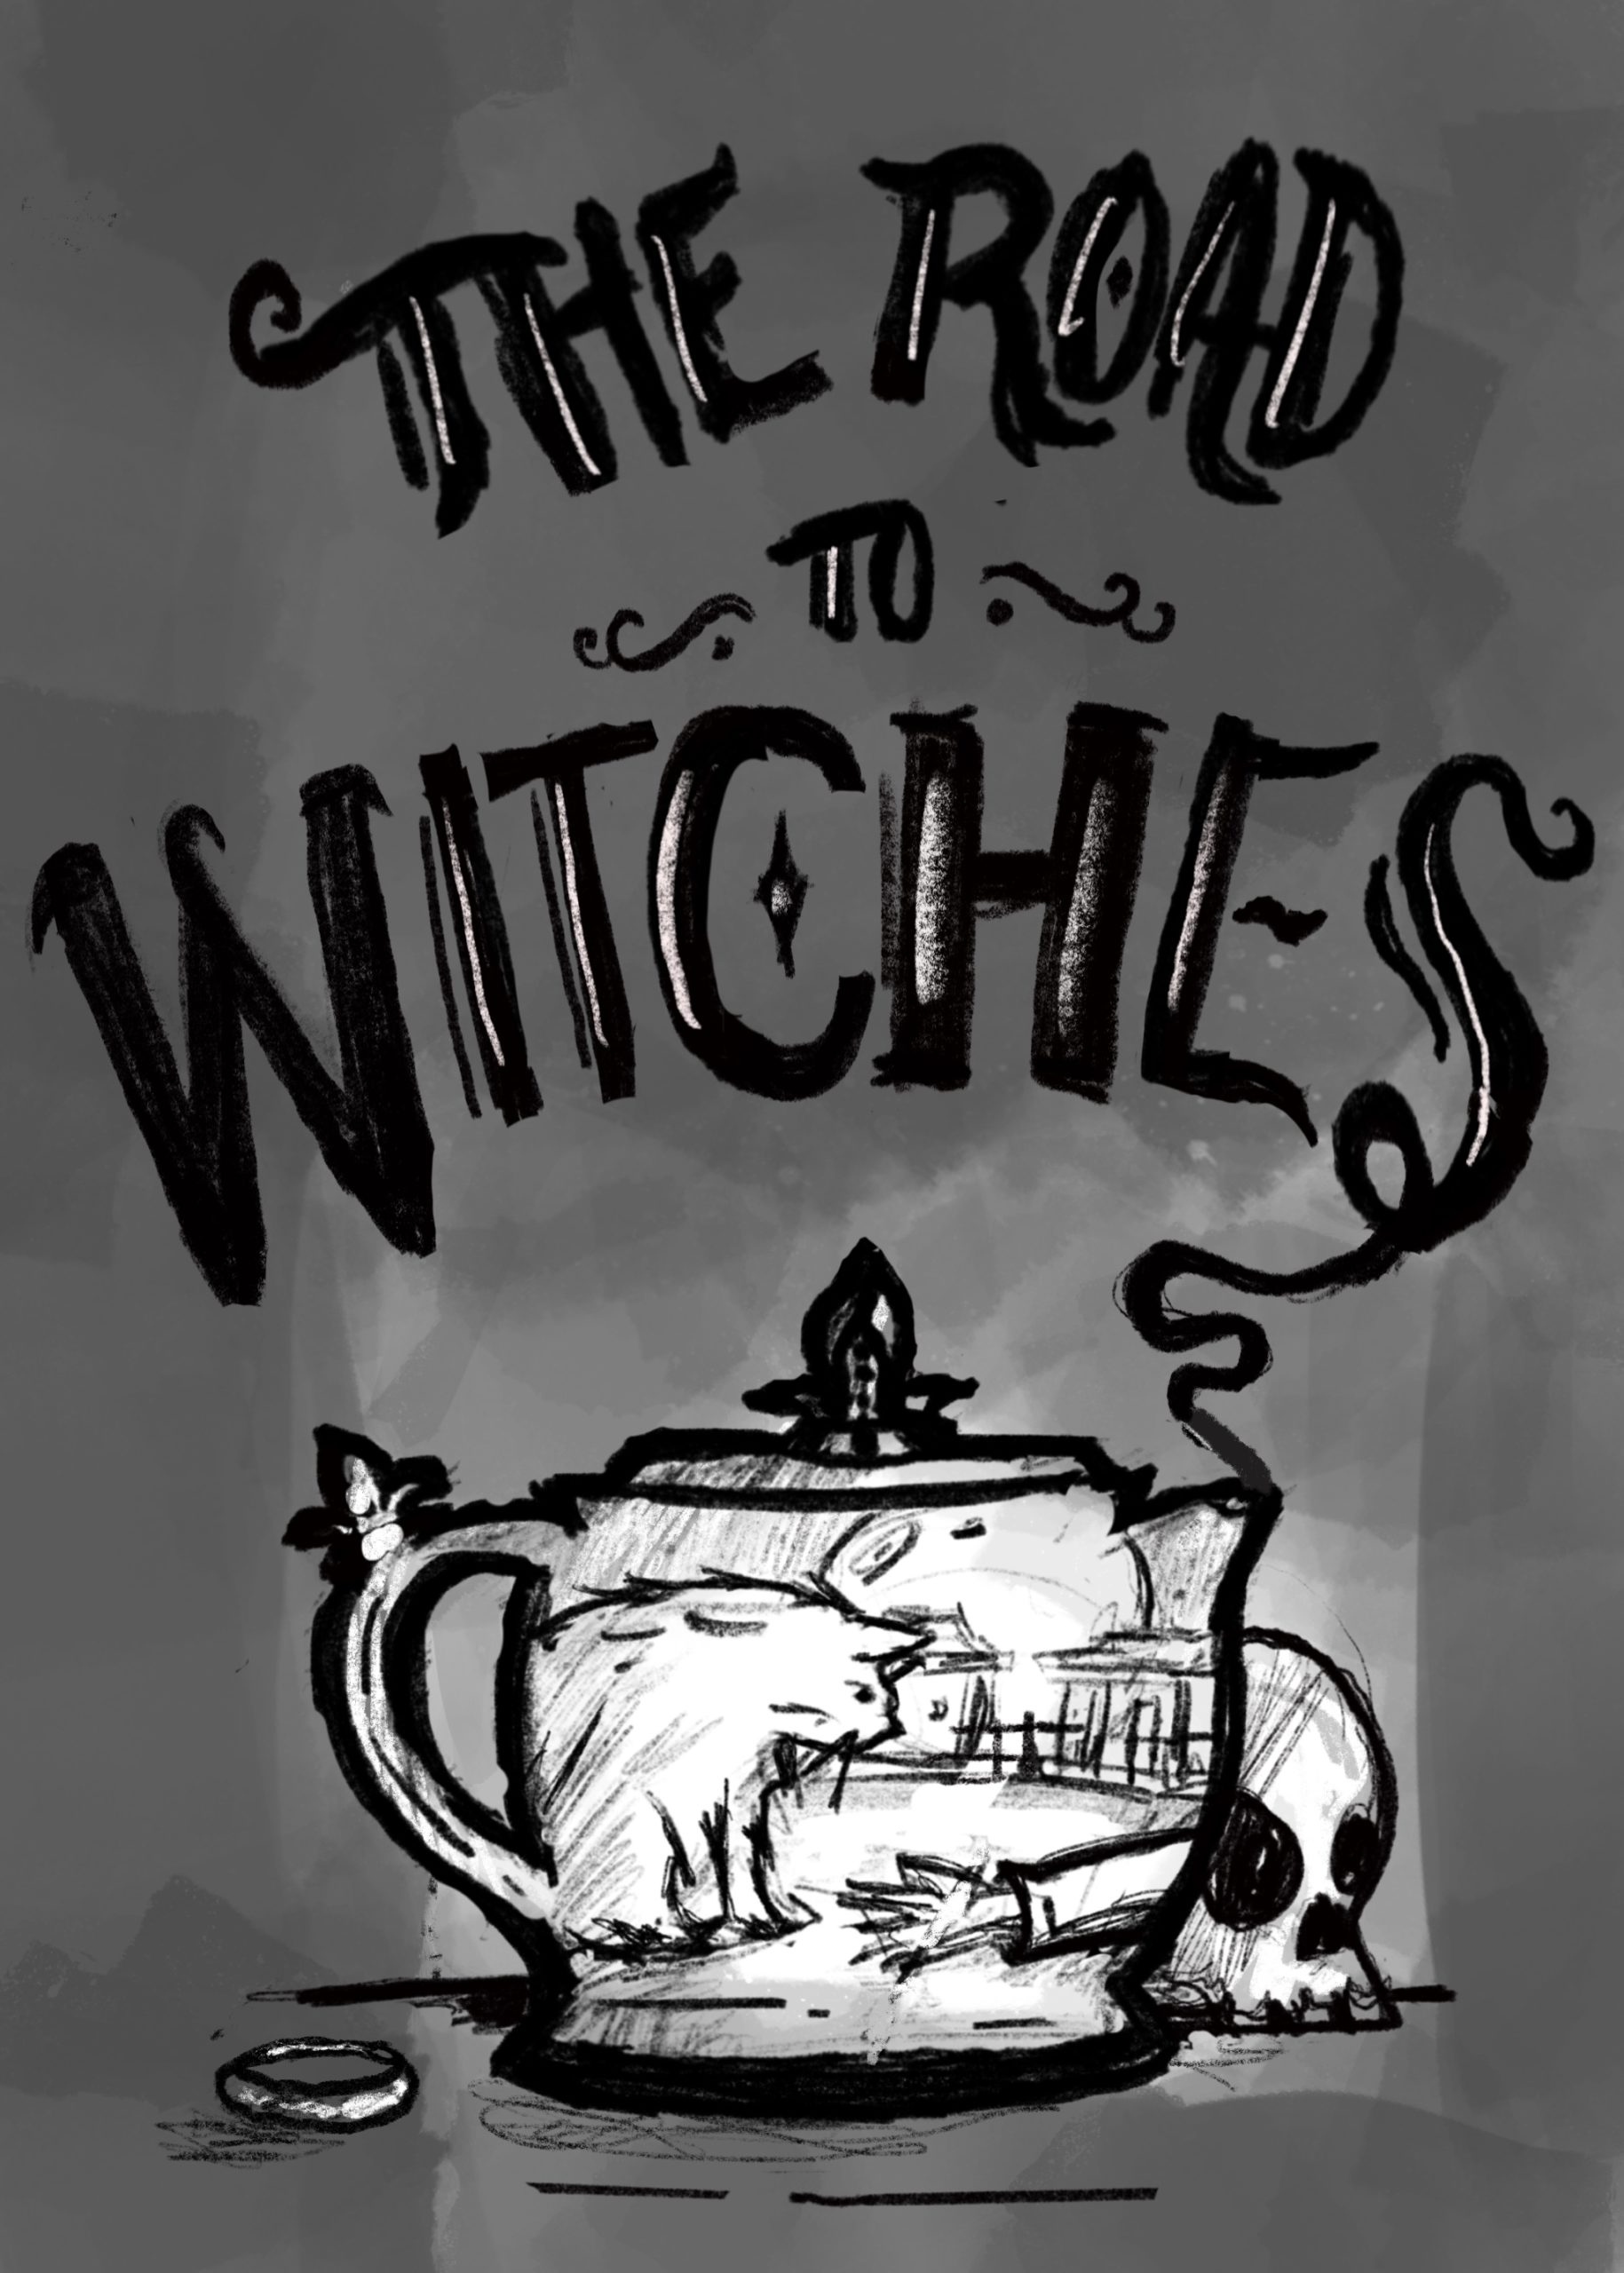 Road to witches - sketch